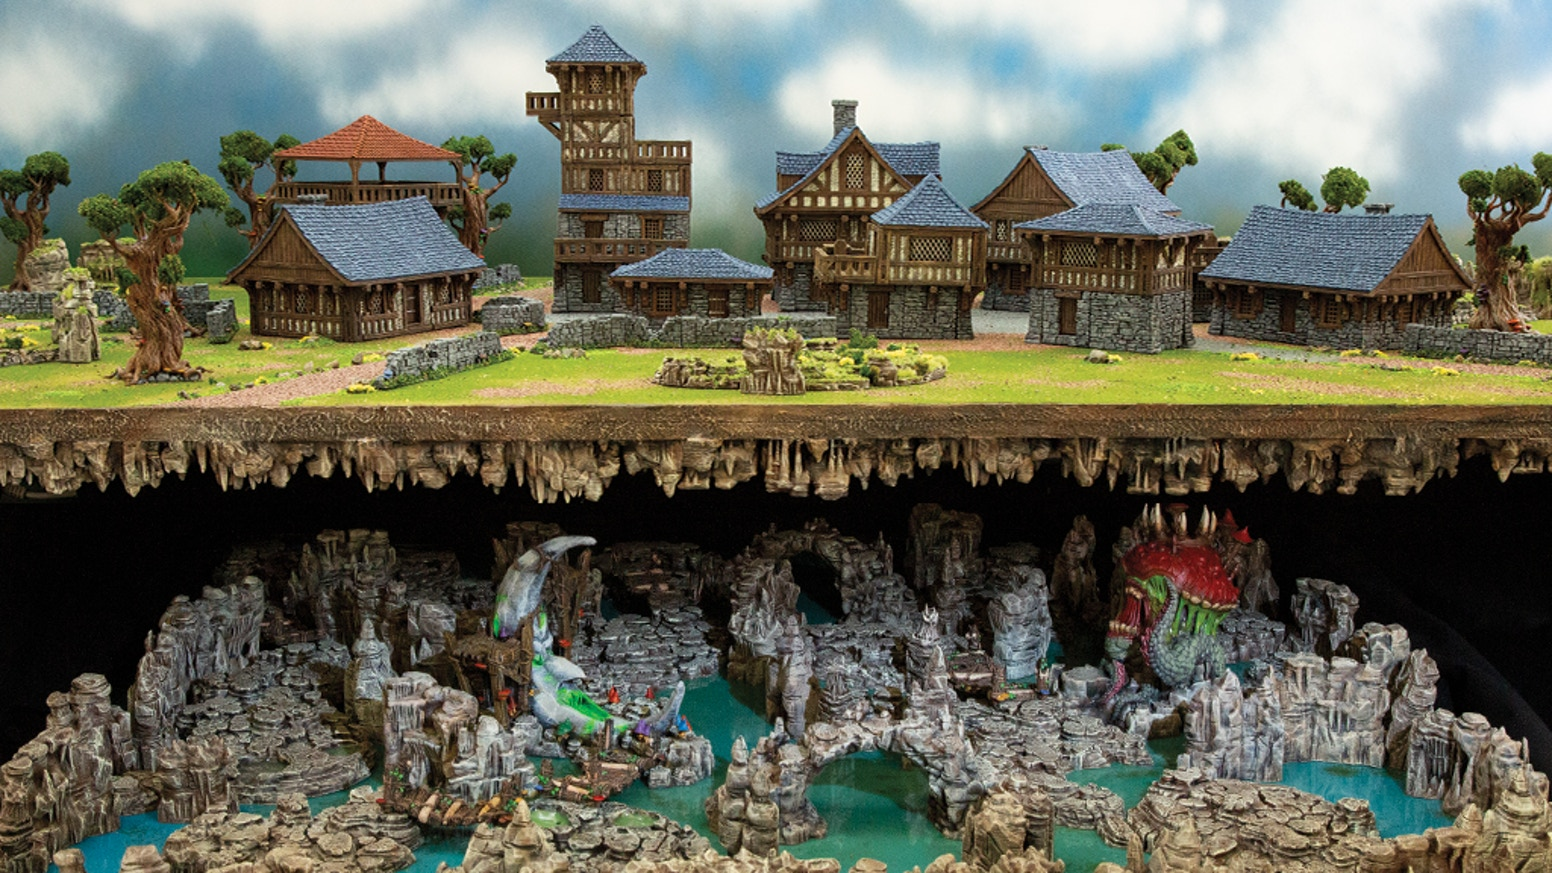 Design your own 3D printable buildings and underground caverns with 3D printable scenery for wargames and RPG